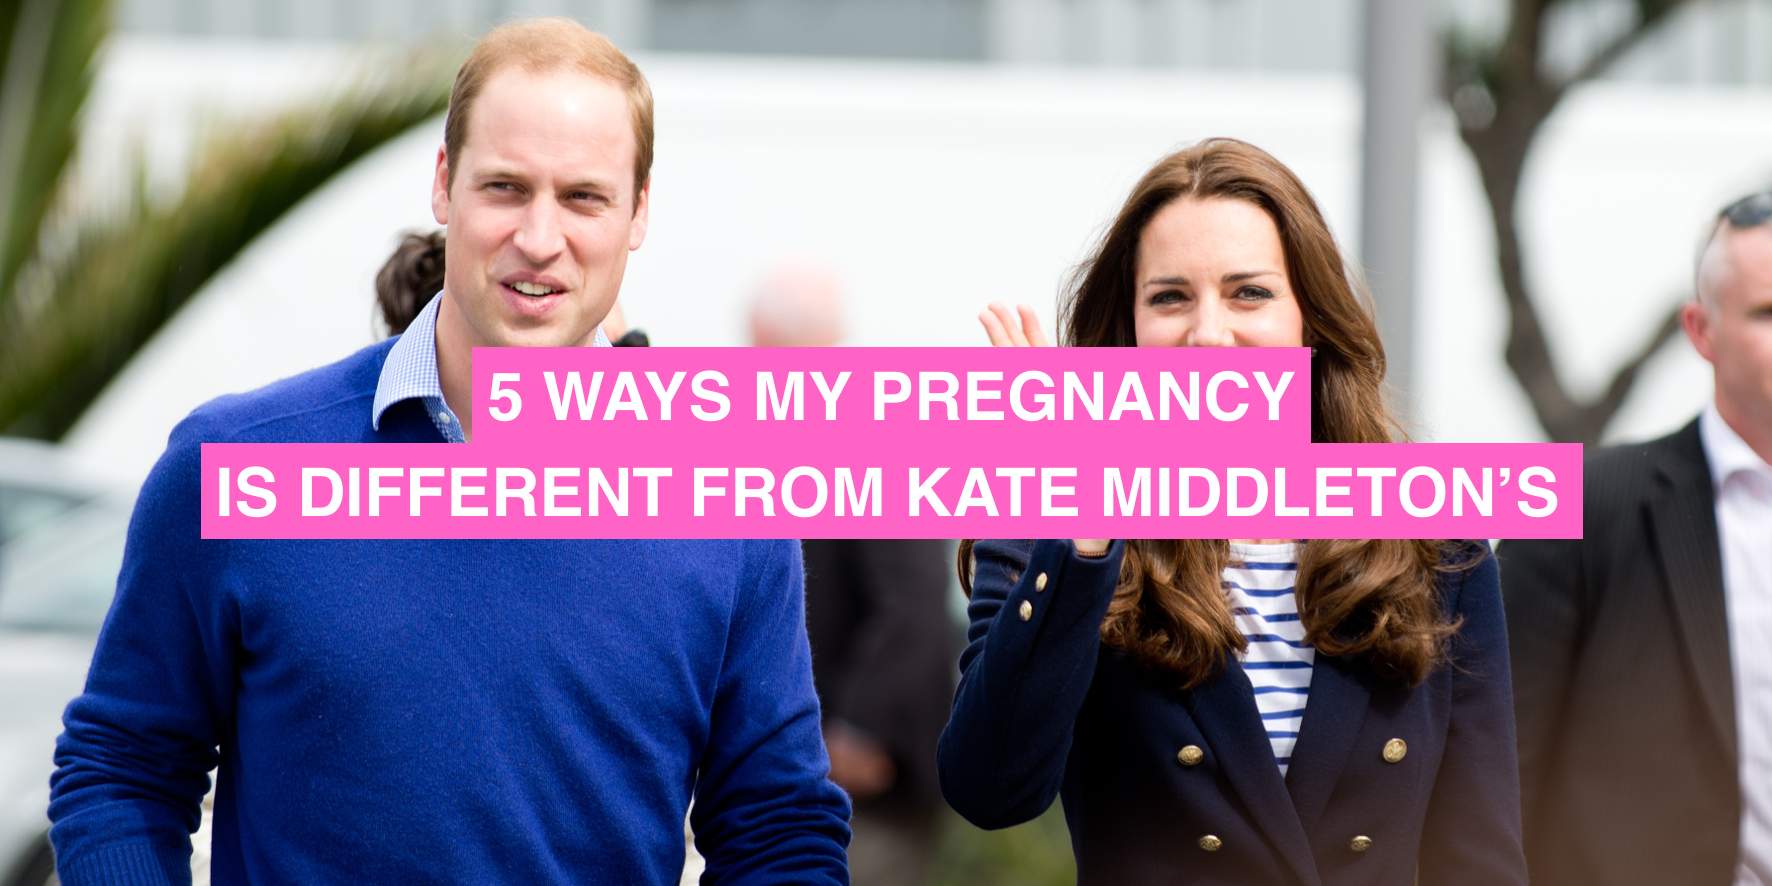 Royal pregnancy vs normal pregnancy